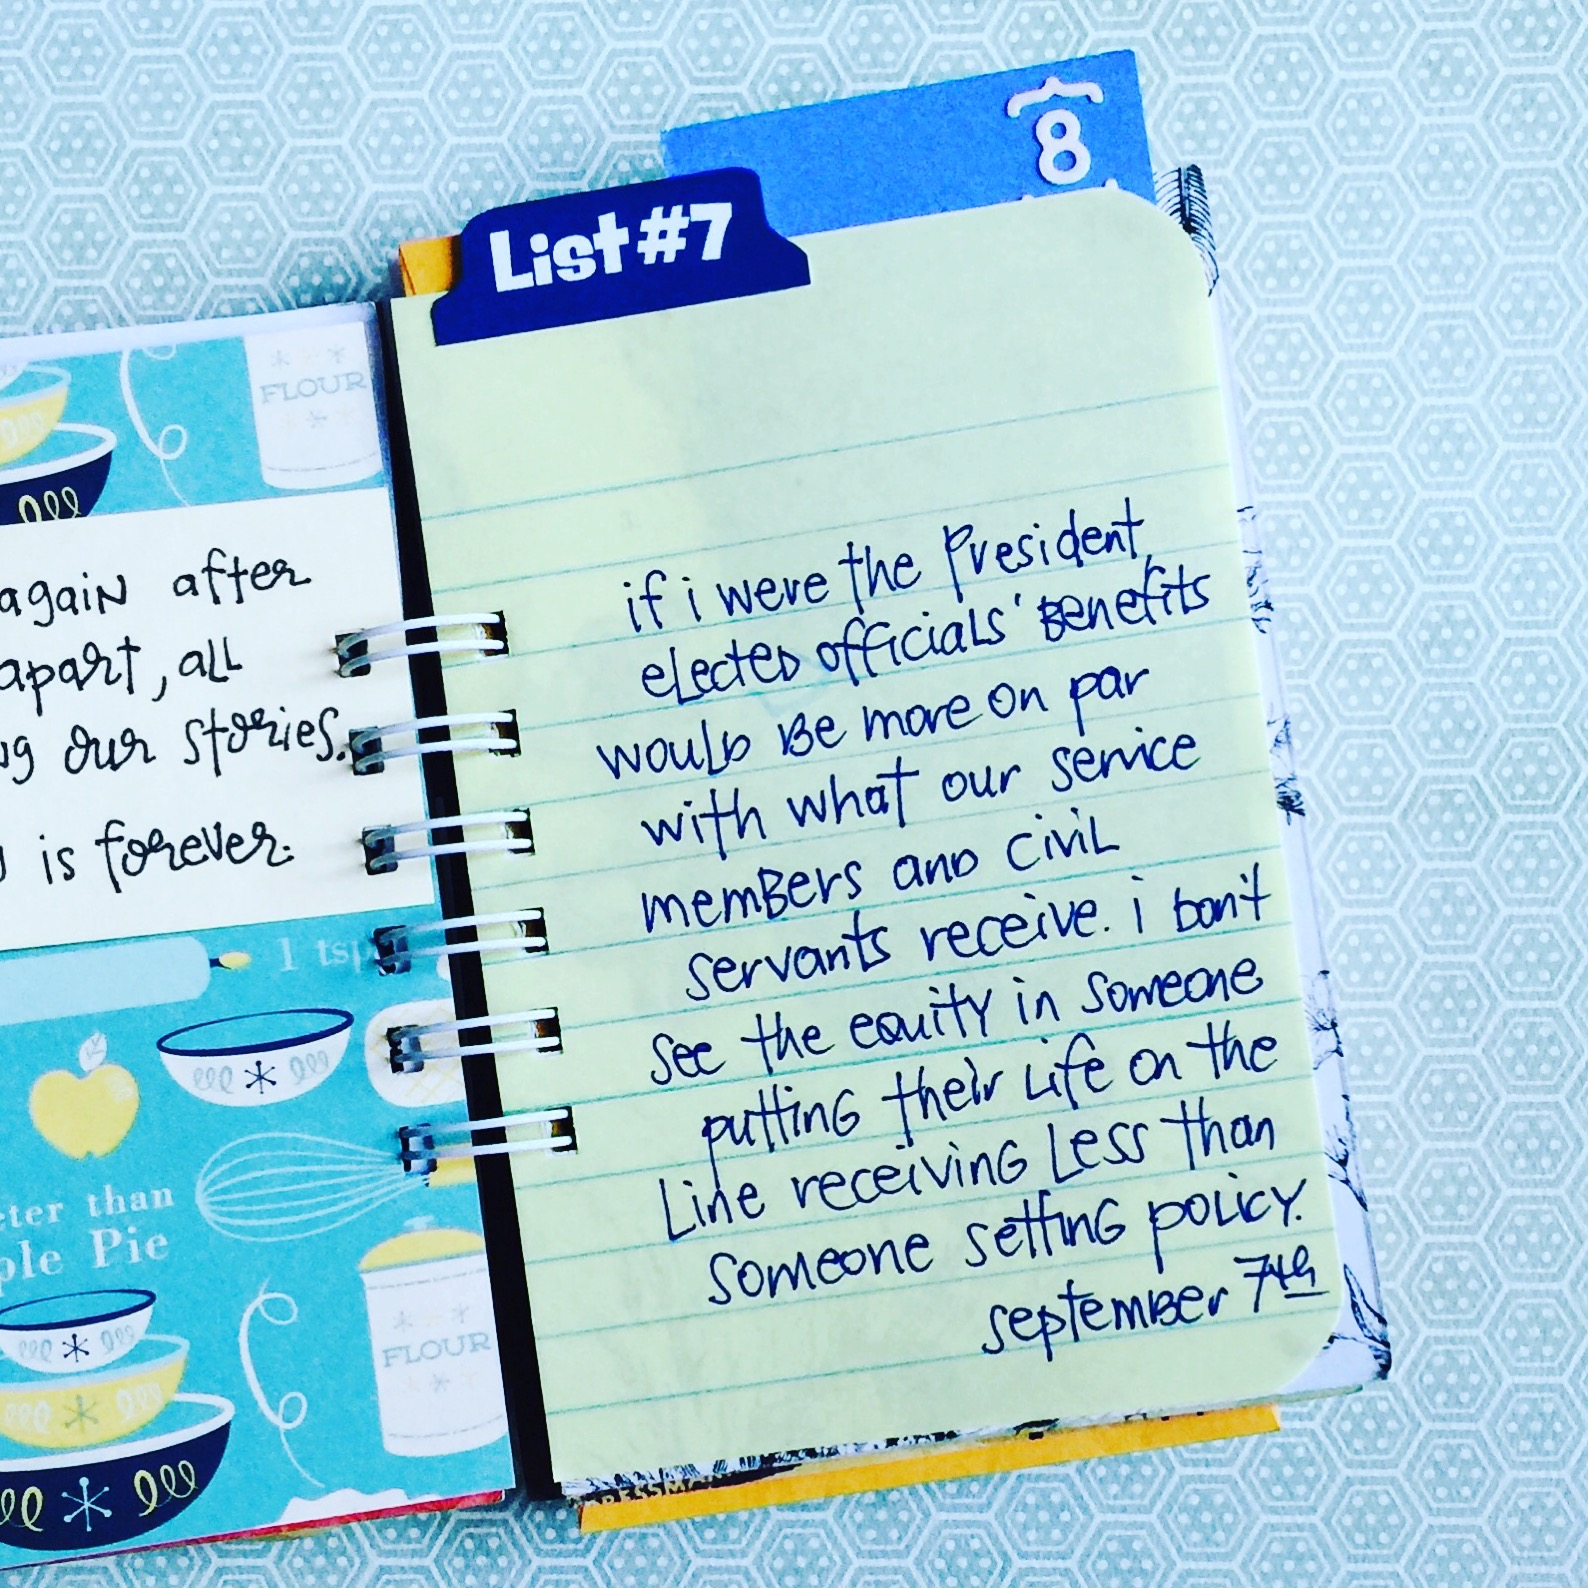 #president # lists #list #30lists #challenge #mini album #smashbook